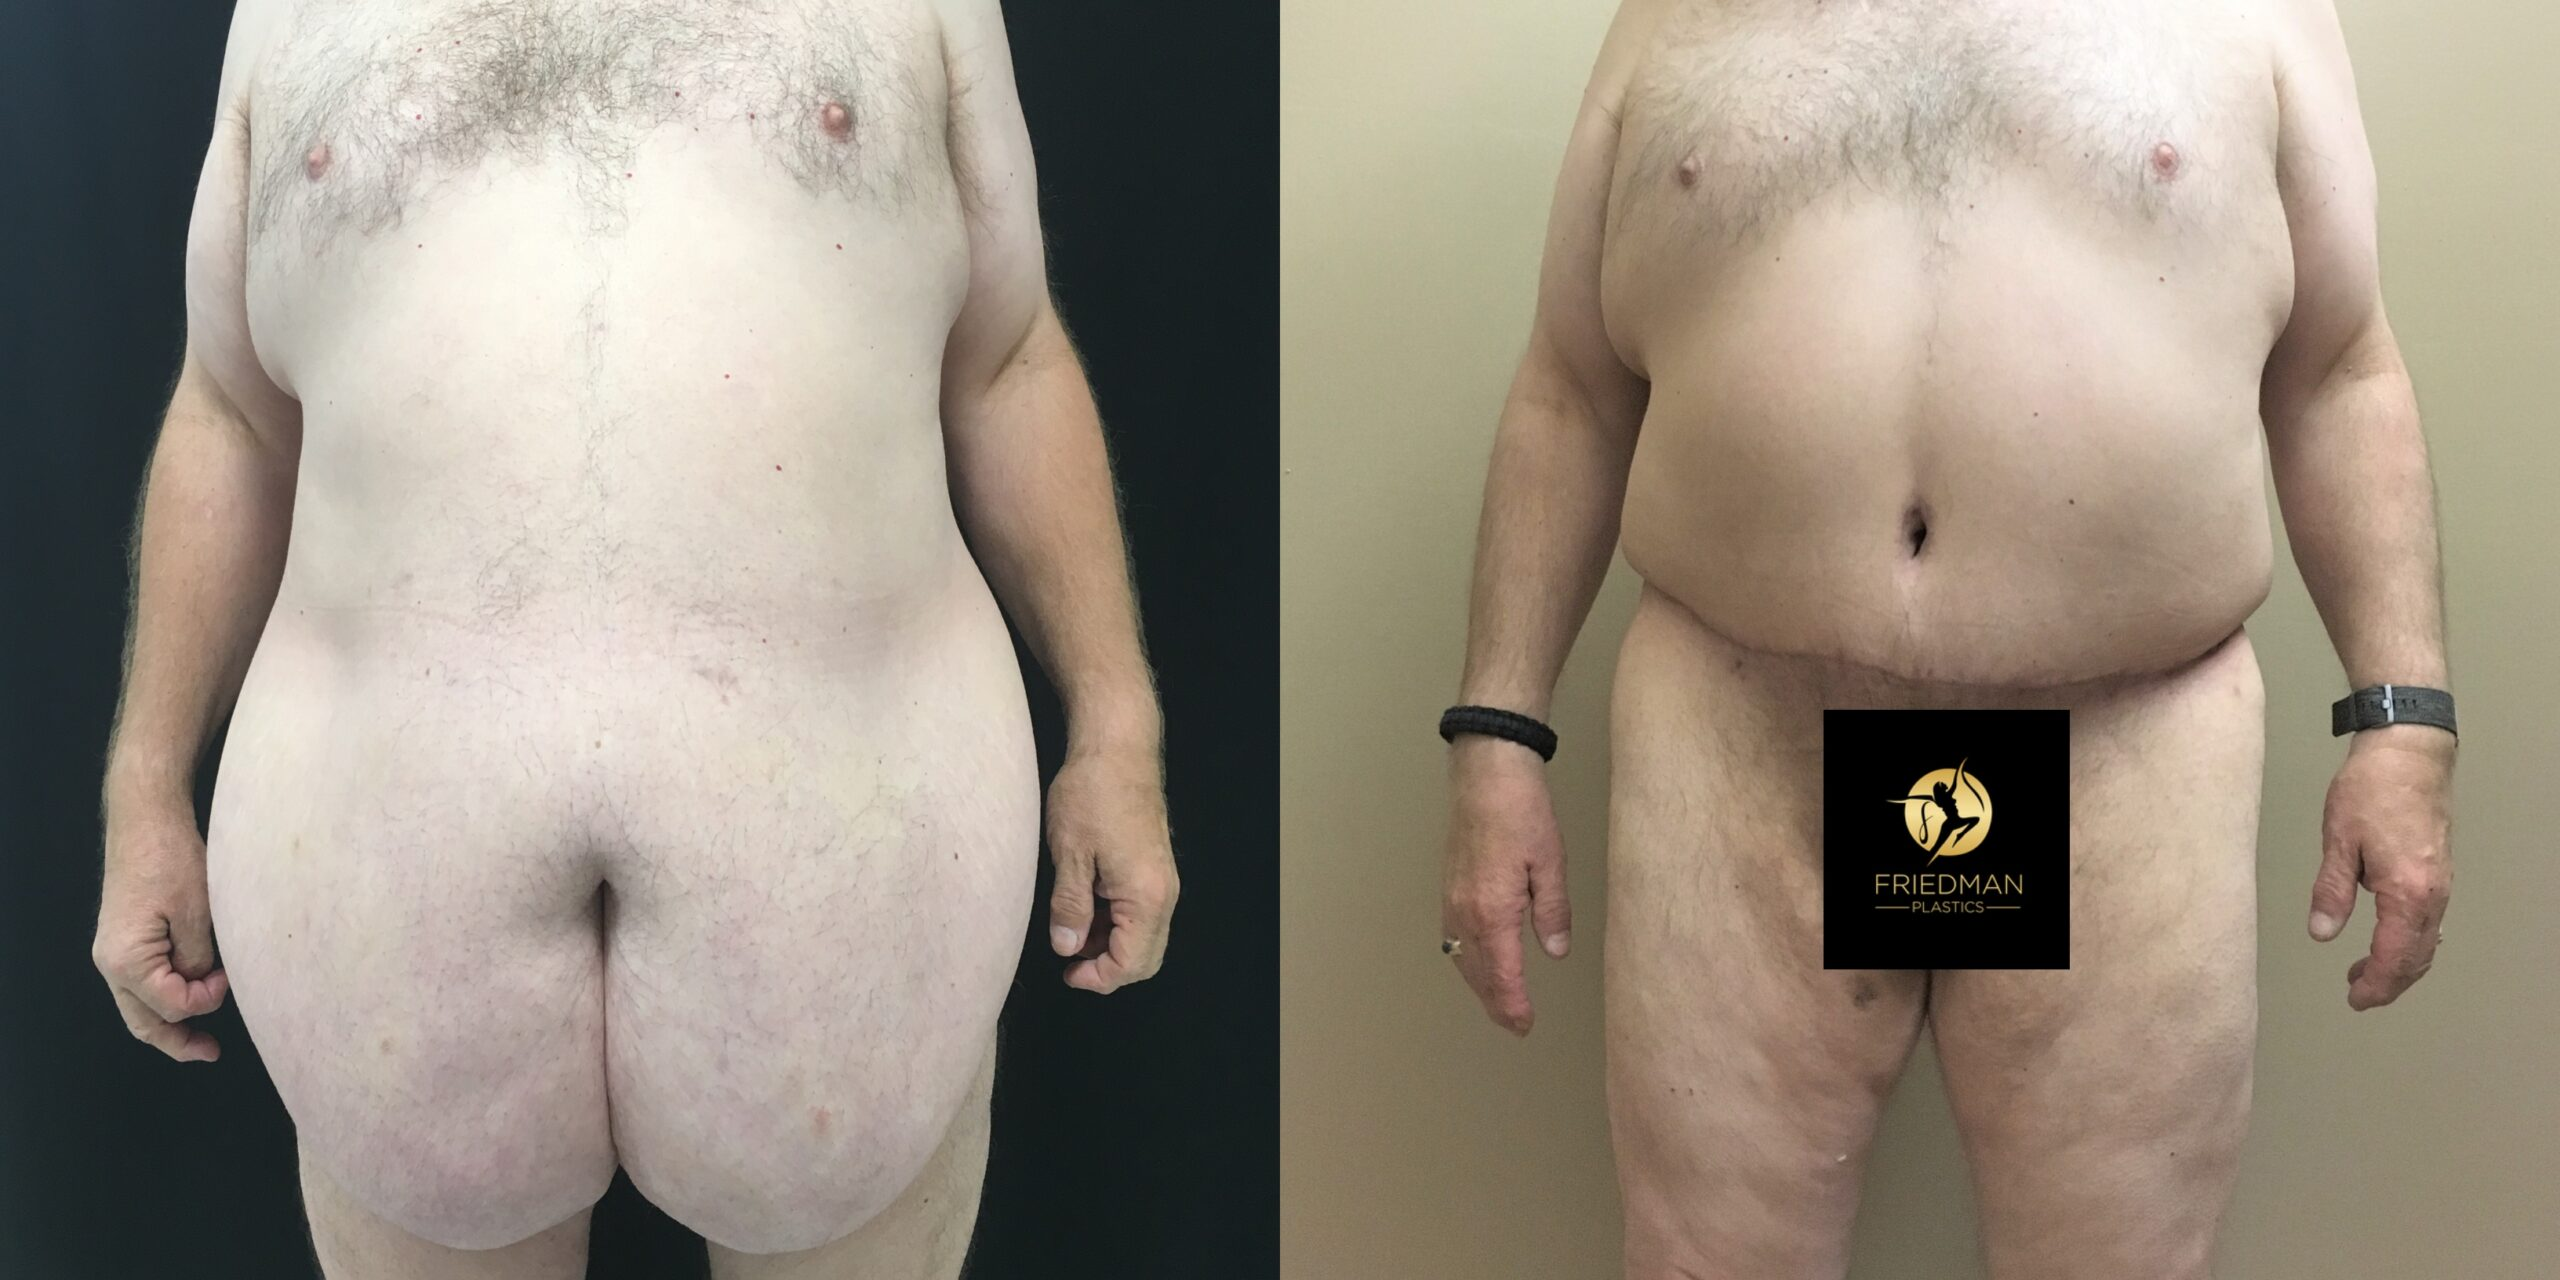 Abdominoplasty with Panniculectomy and Posterior Lower Body LiftLower Body Lift